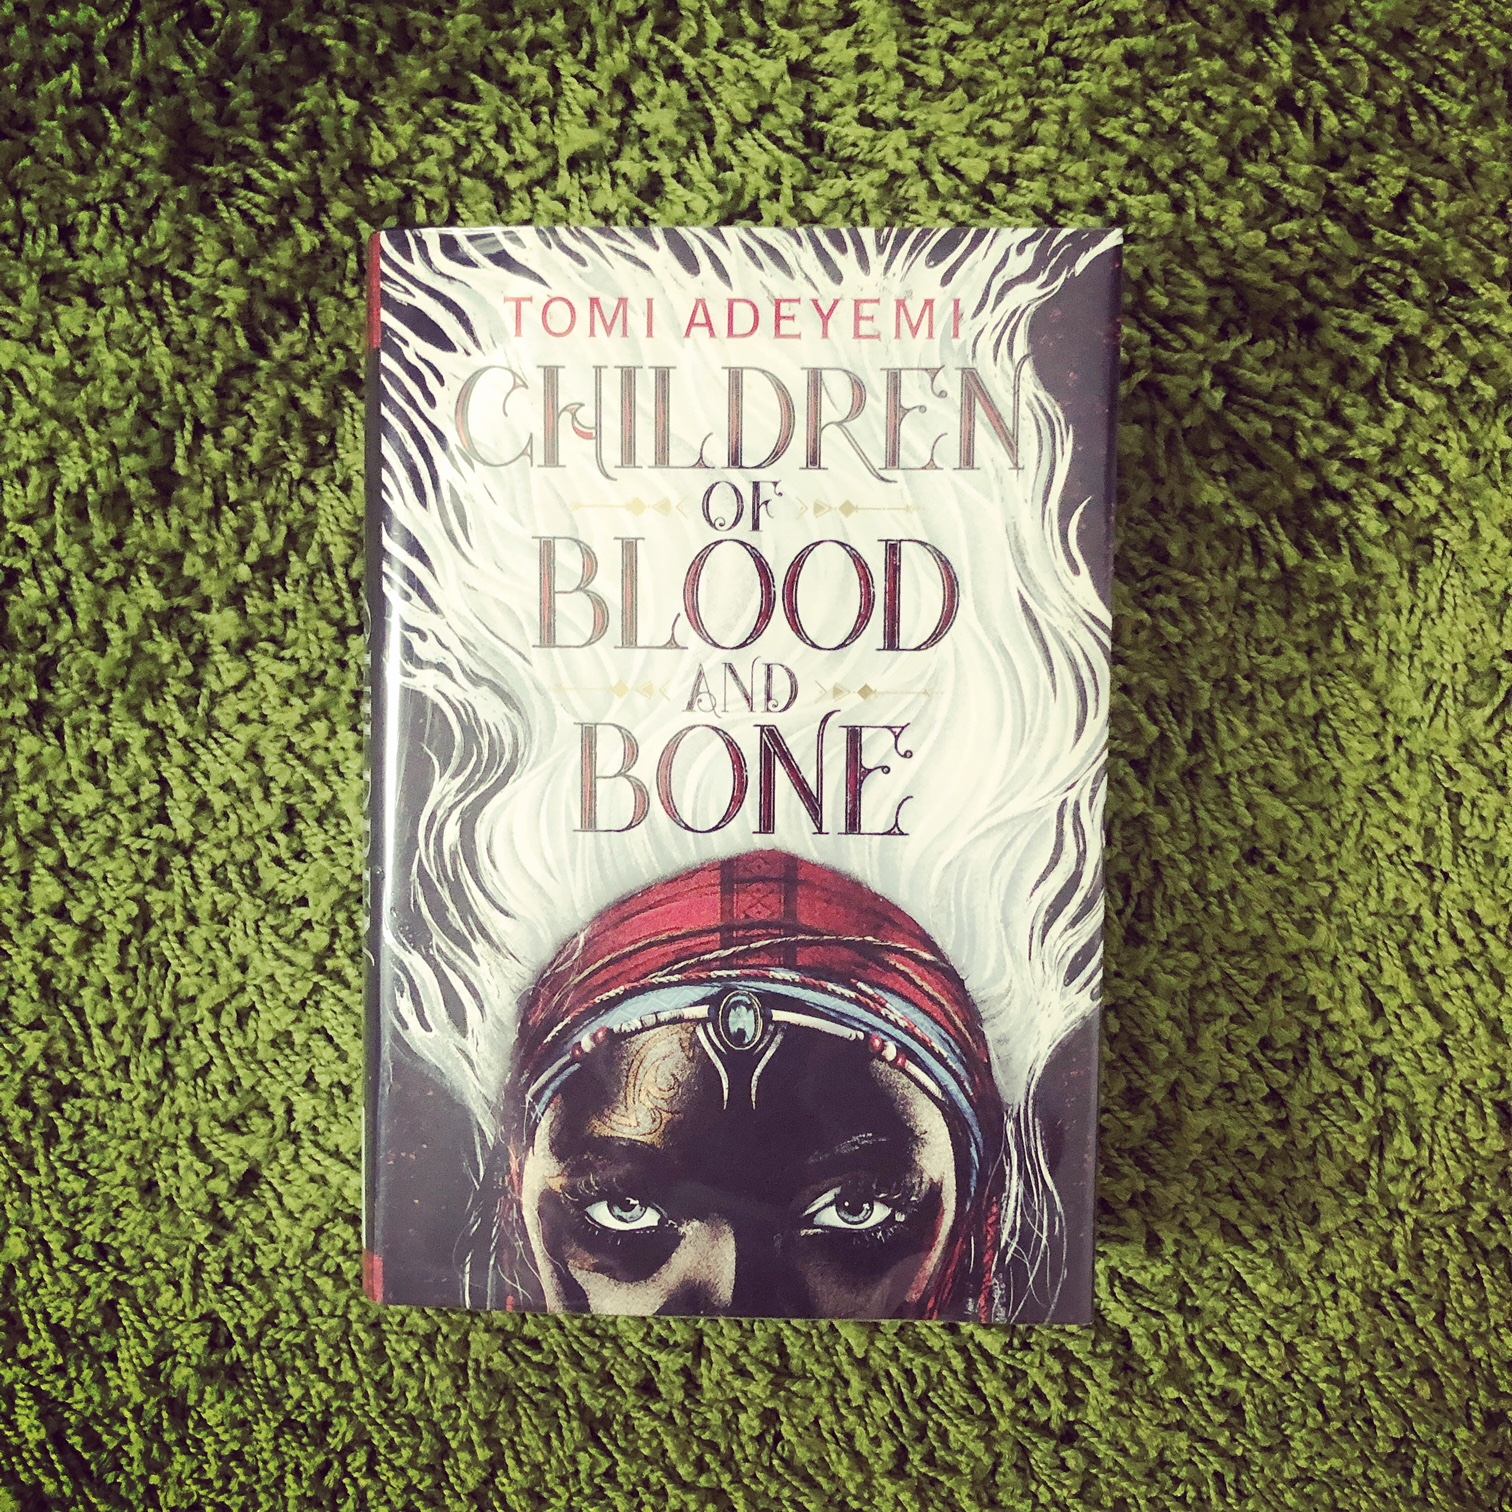 I just finished  this beautifully-written and haunting novel  by Tomi Adeyemi. She wrote it as a response to grief she was experiencing over so many young black men losing their lives in socially-condoned ways. It's HarryPotter-meets-Black Lives Matter, emotional, political page-turning young adult literature at its best.